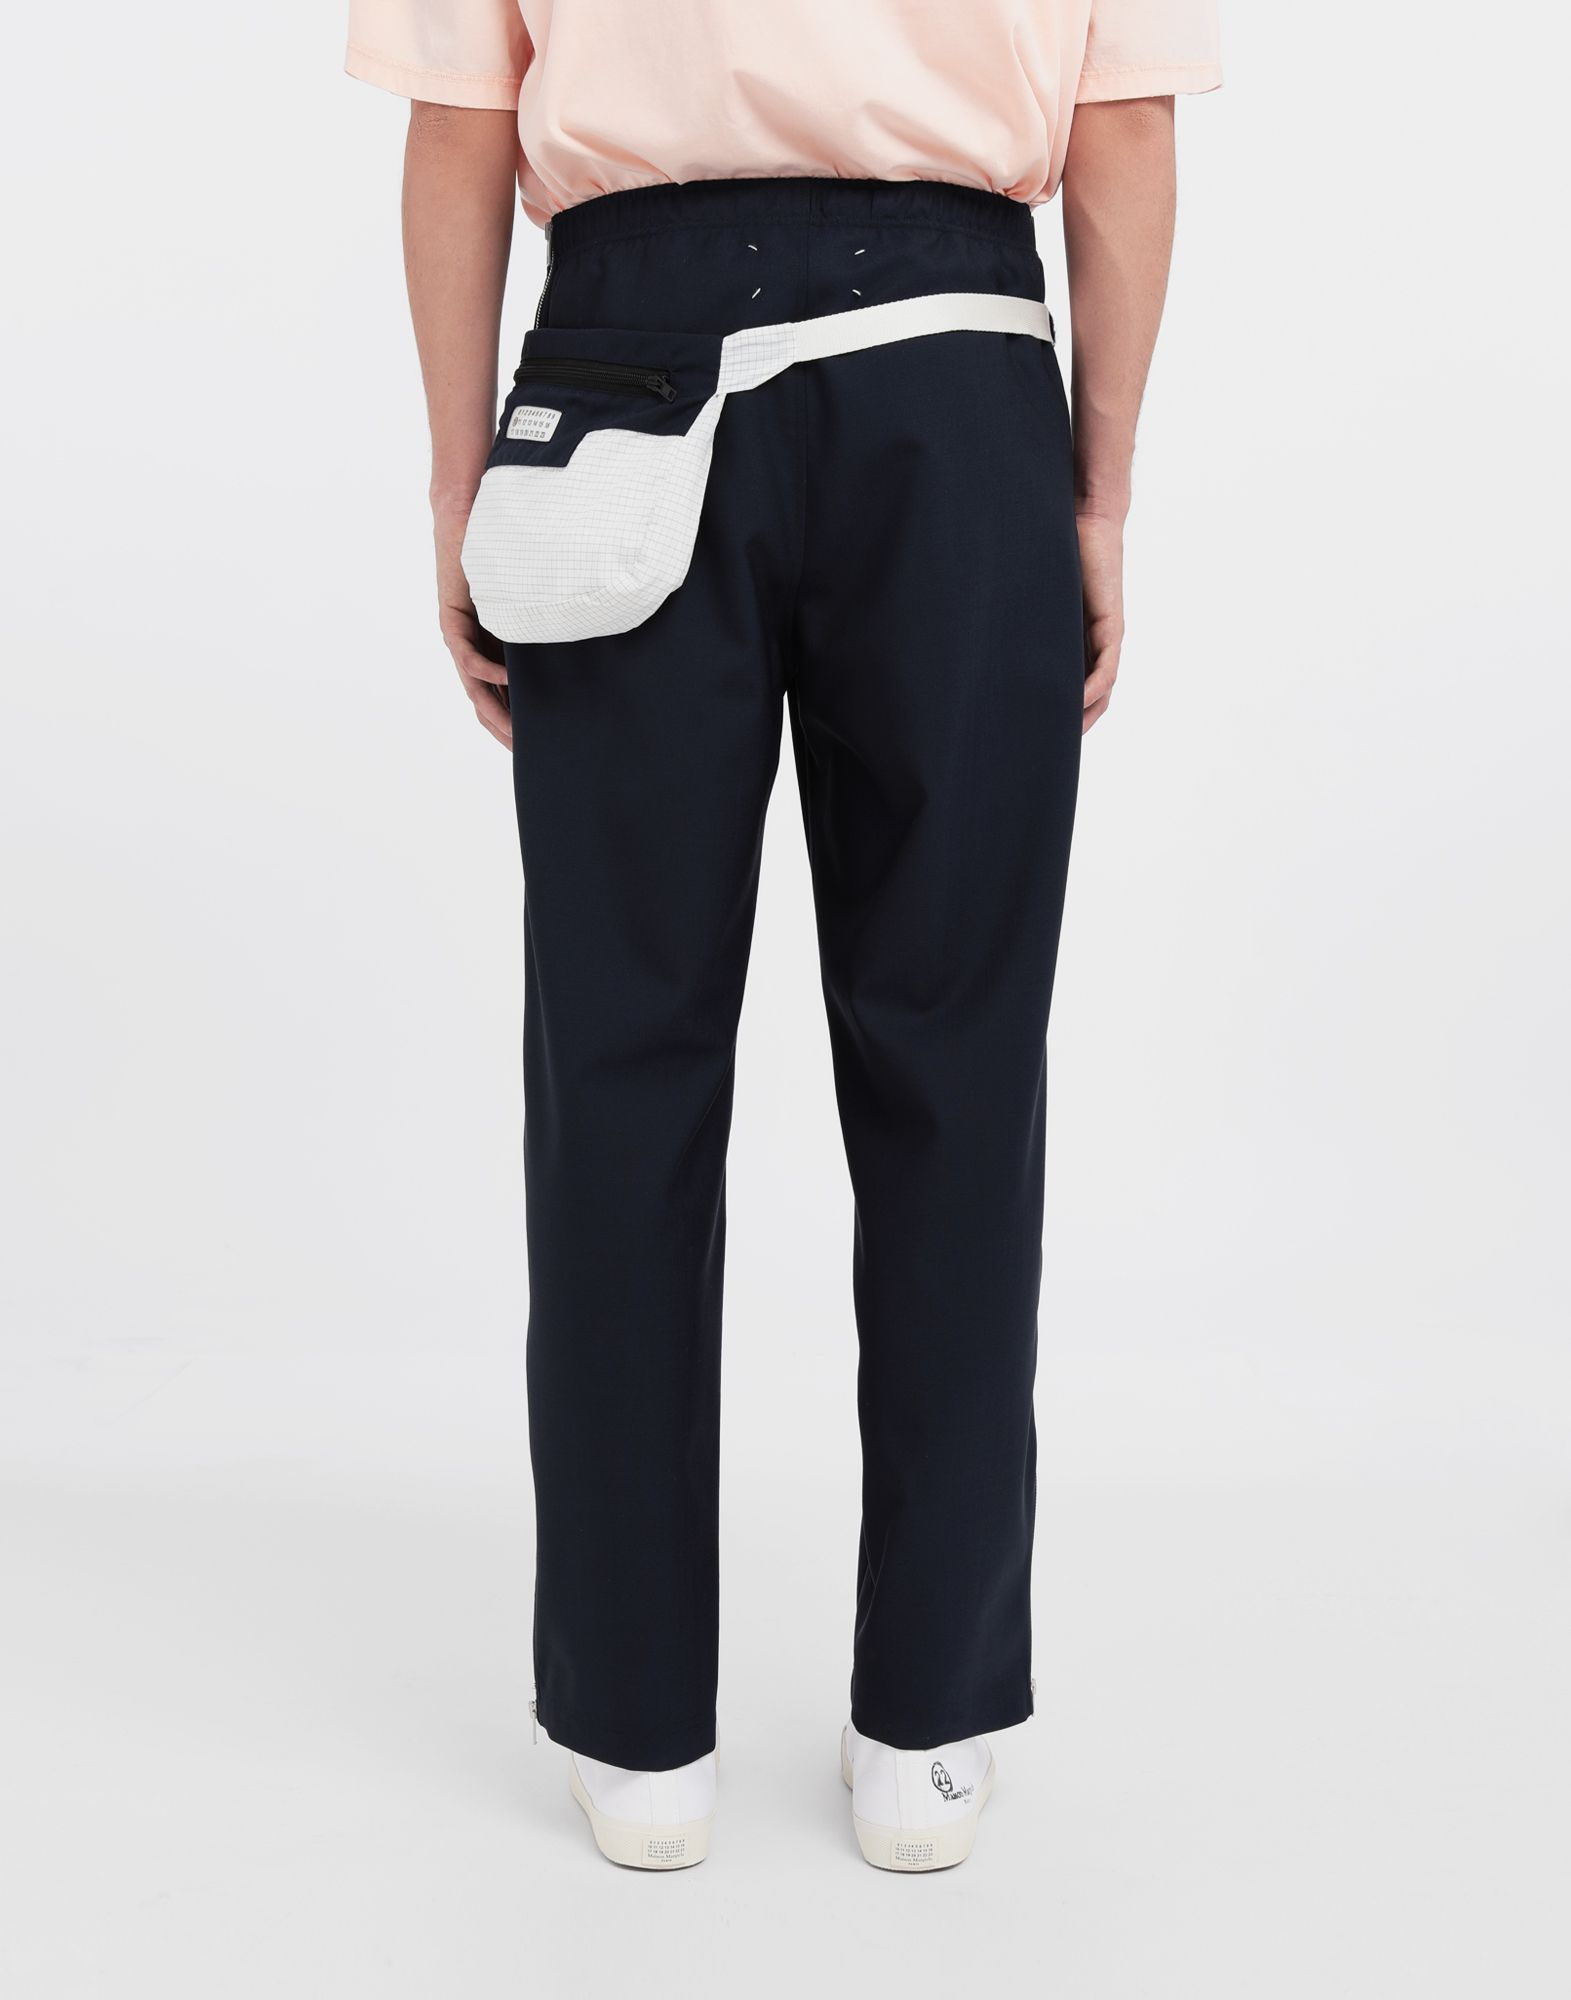 MAISON MARGIELA Bumbag pocket lining pants Trousers Man e